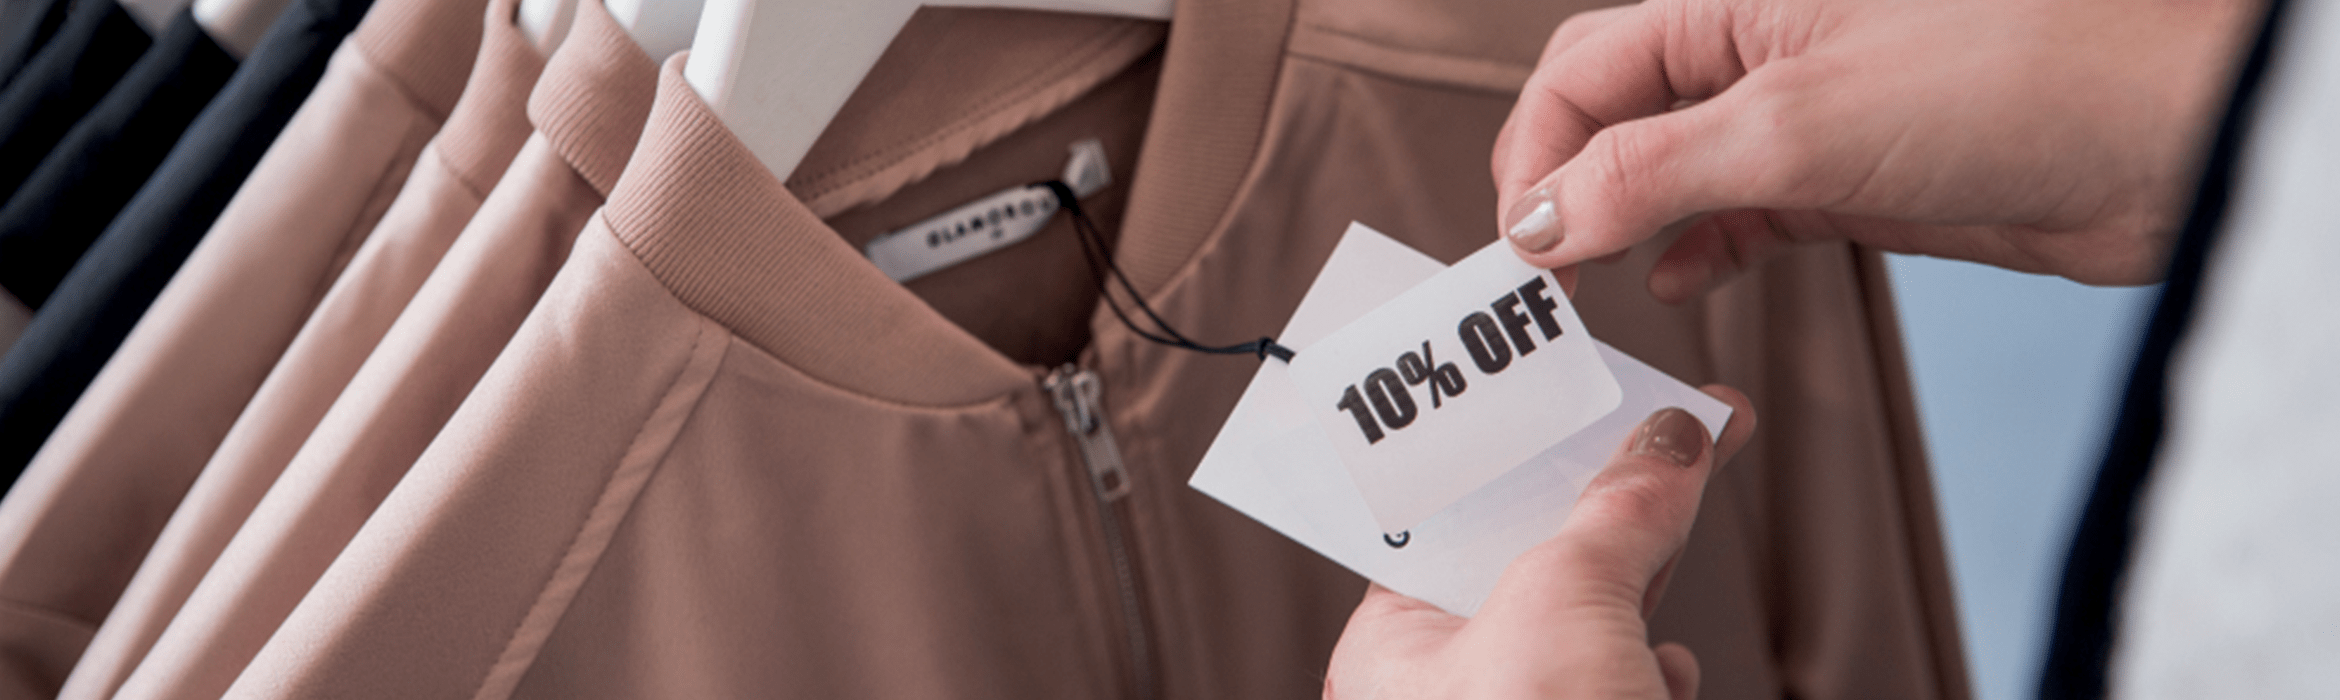 10 percent off tag on item of clothing